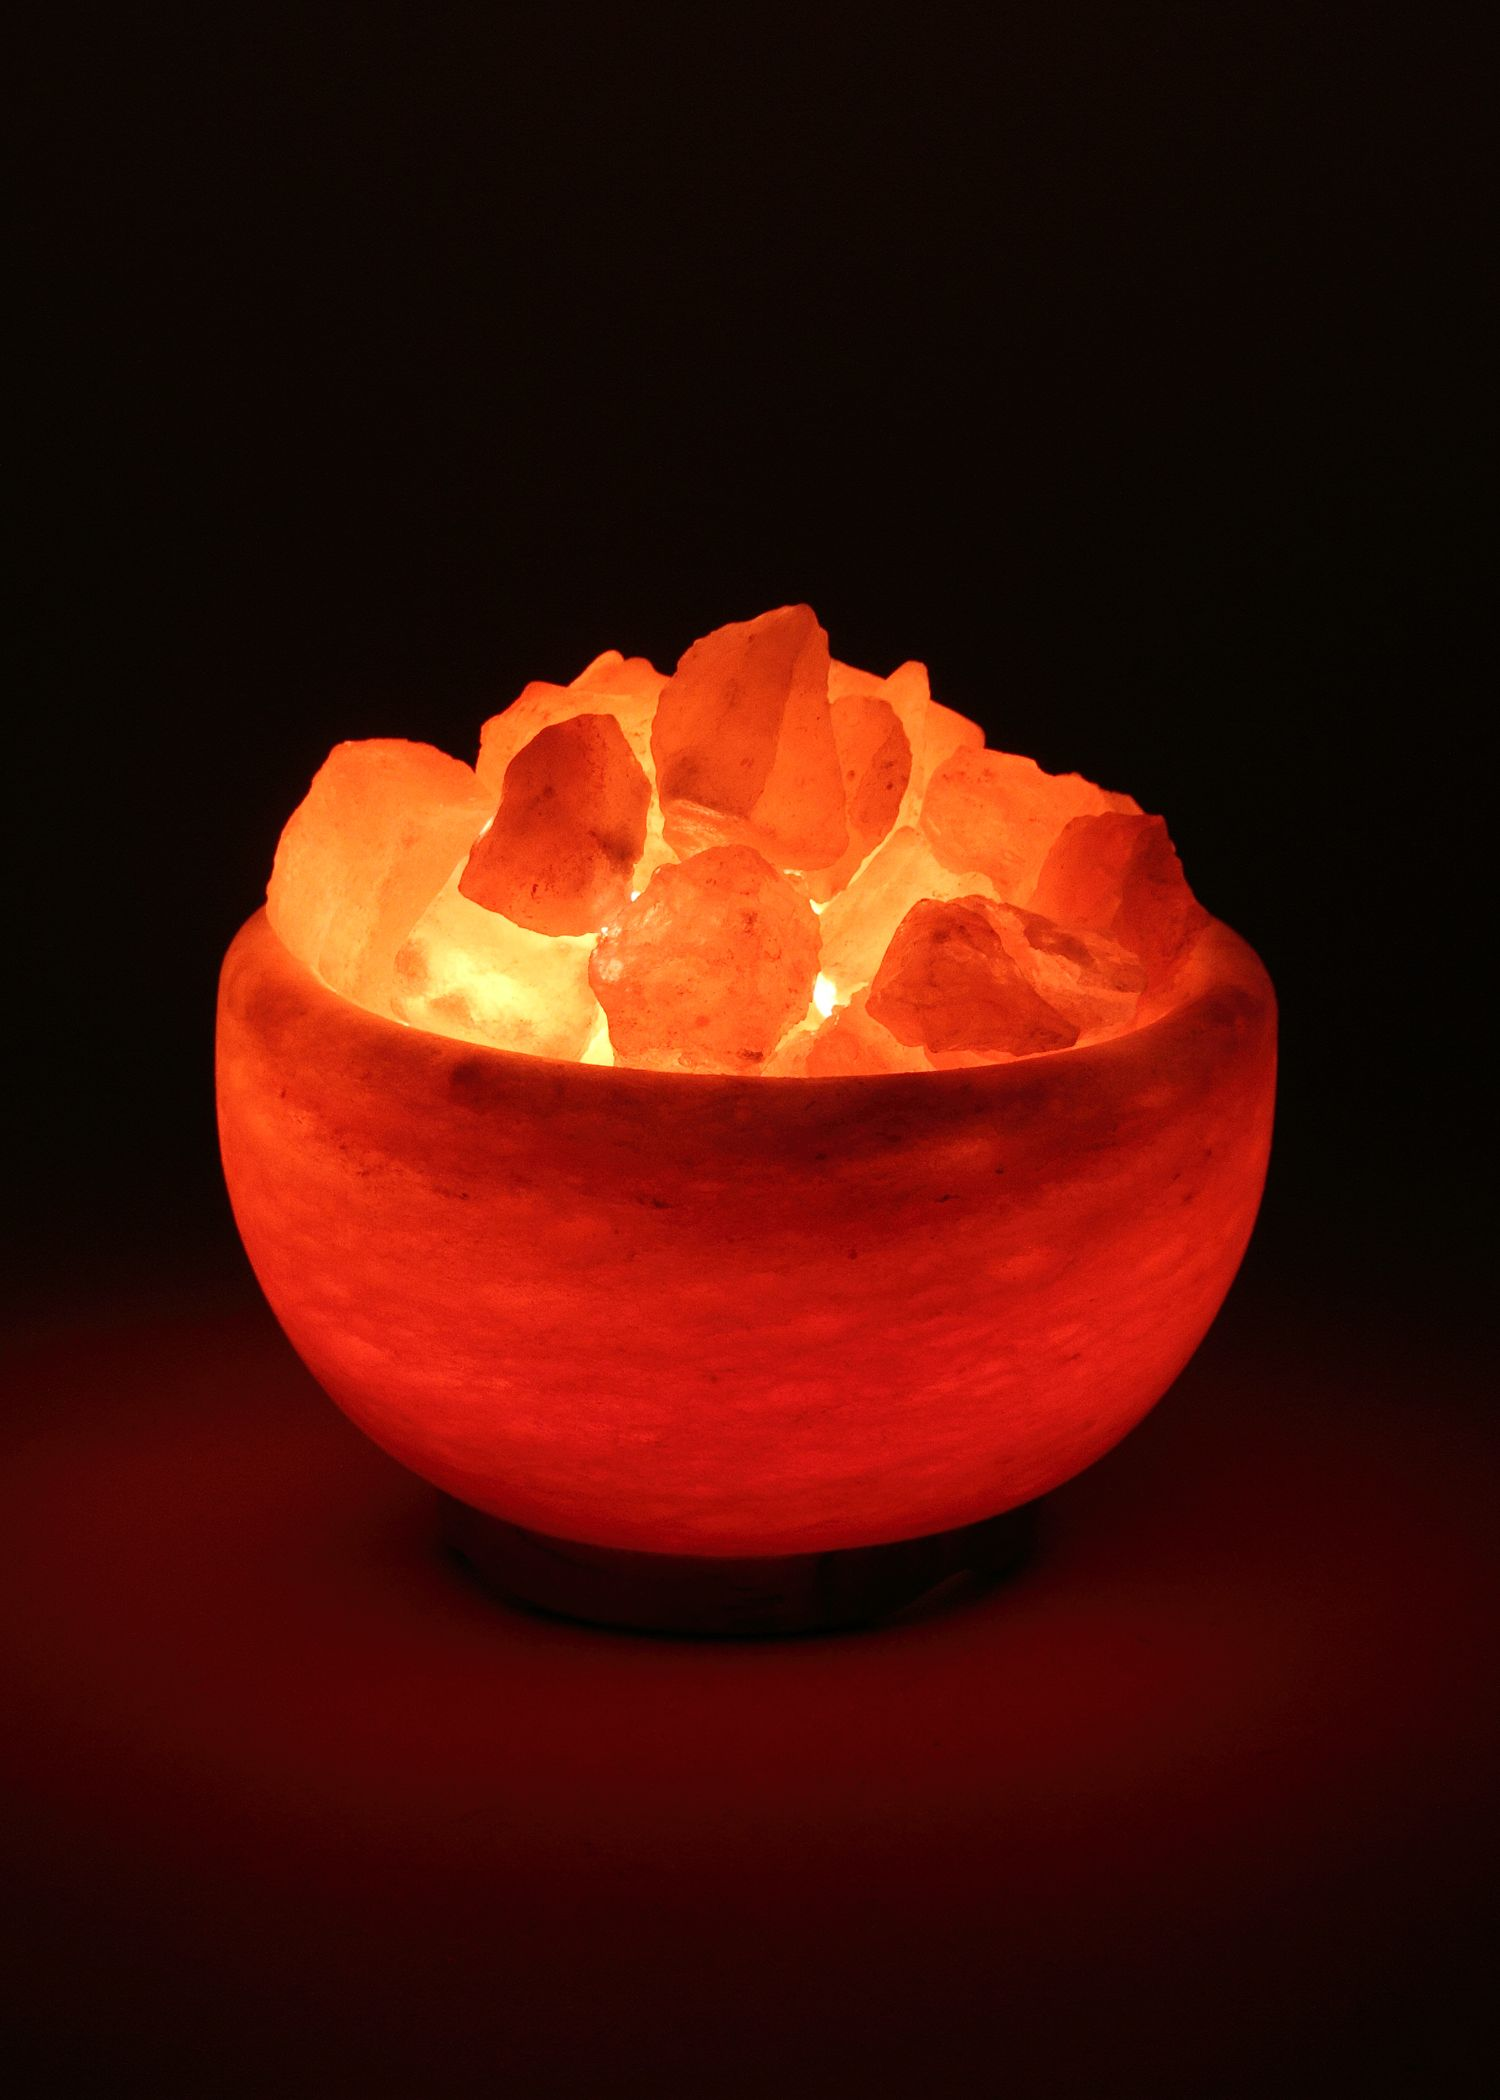 Himalayan Salt Lamps Wholesale Healthy Life Cycle Retail And Wholesale Himalayan Salt Lamps And